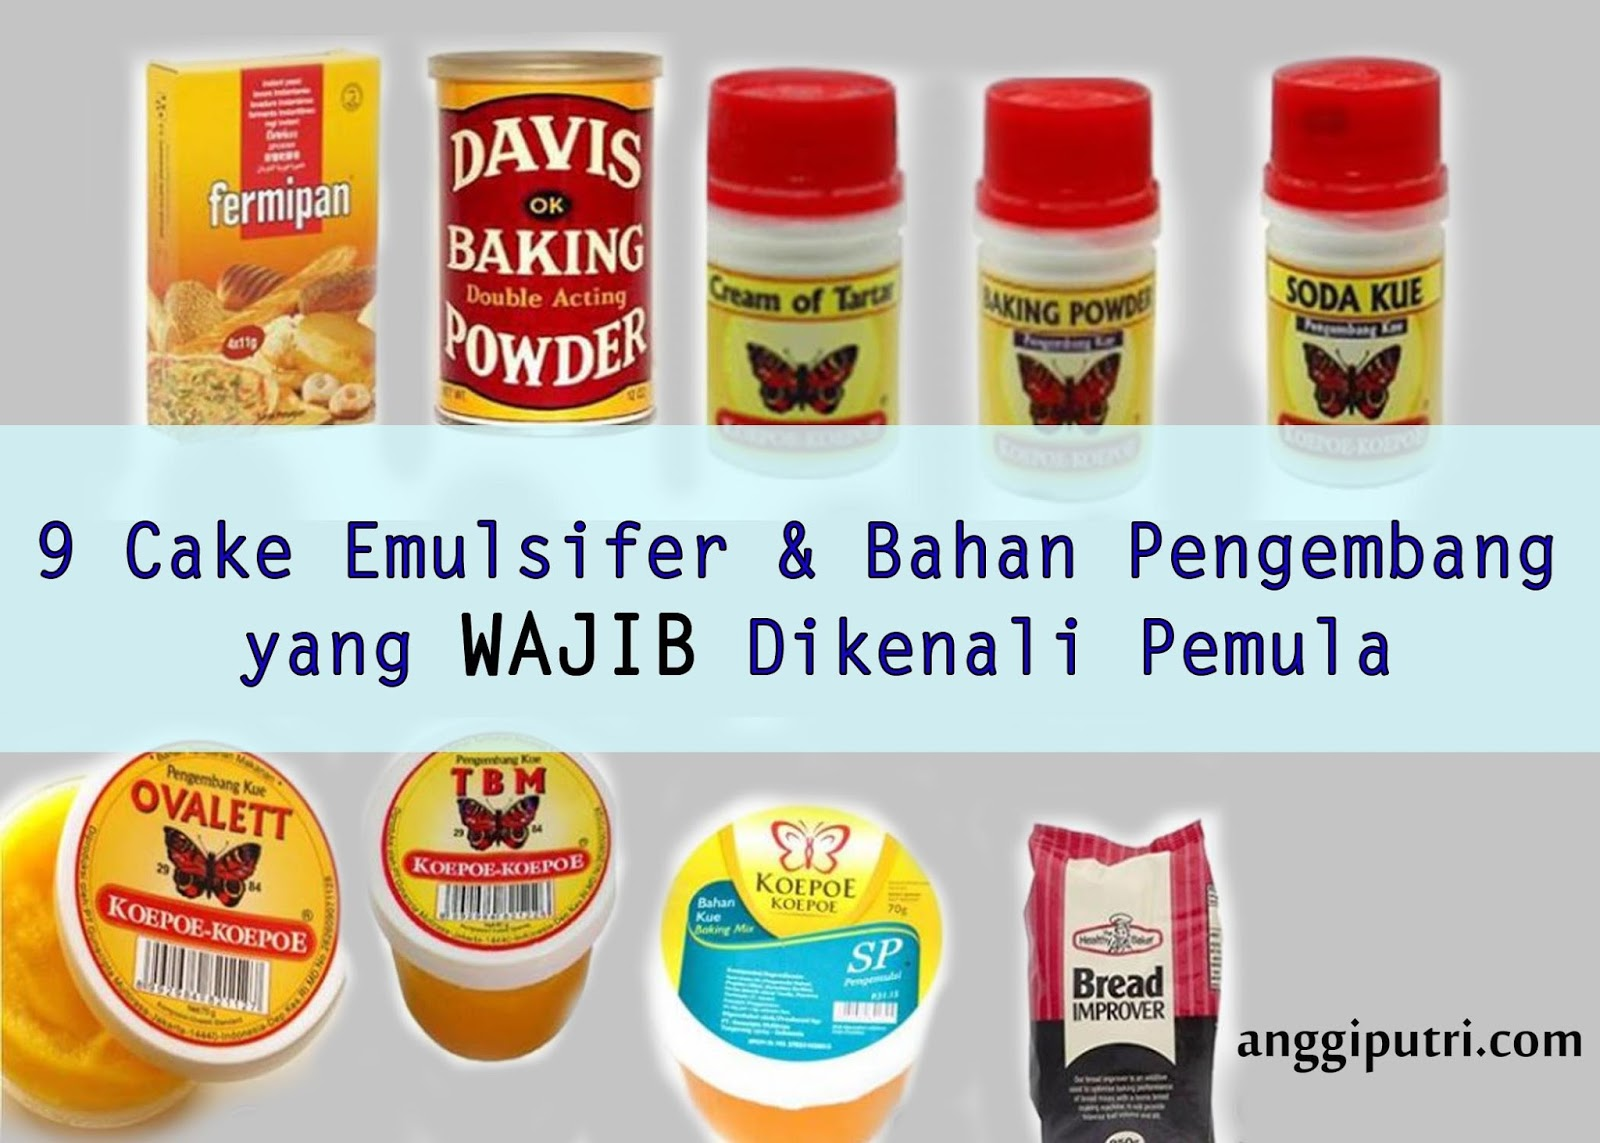 harga baking powder double acting hercules